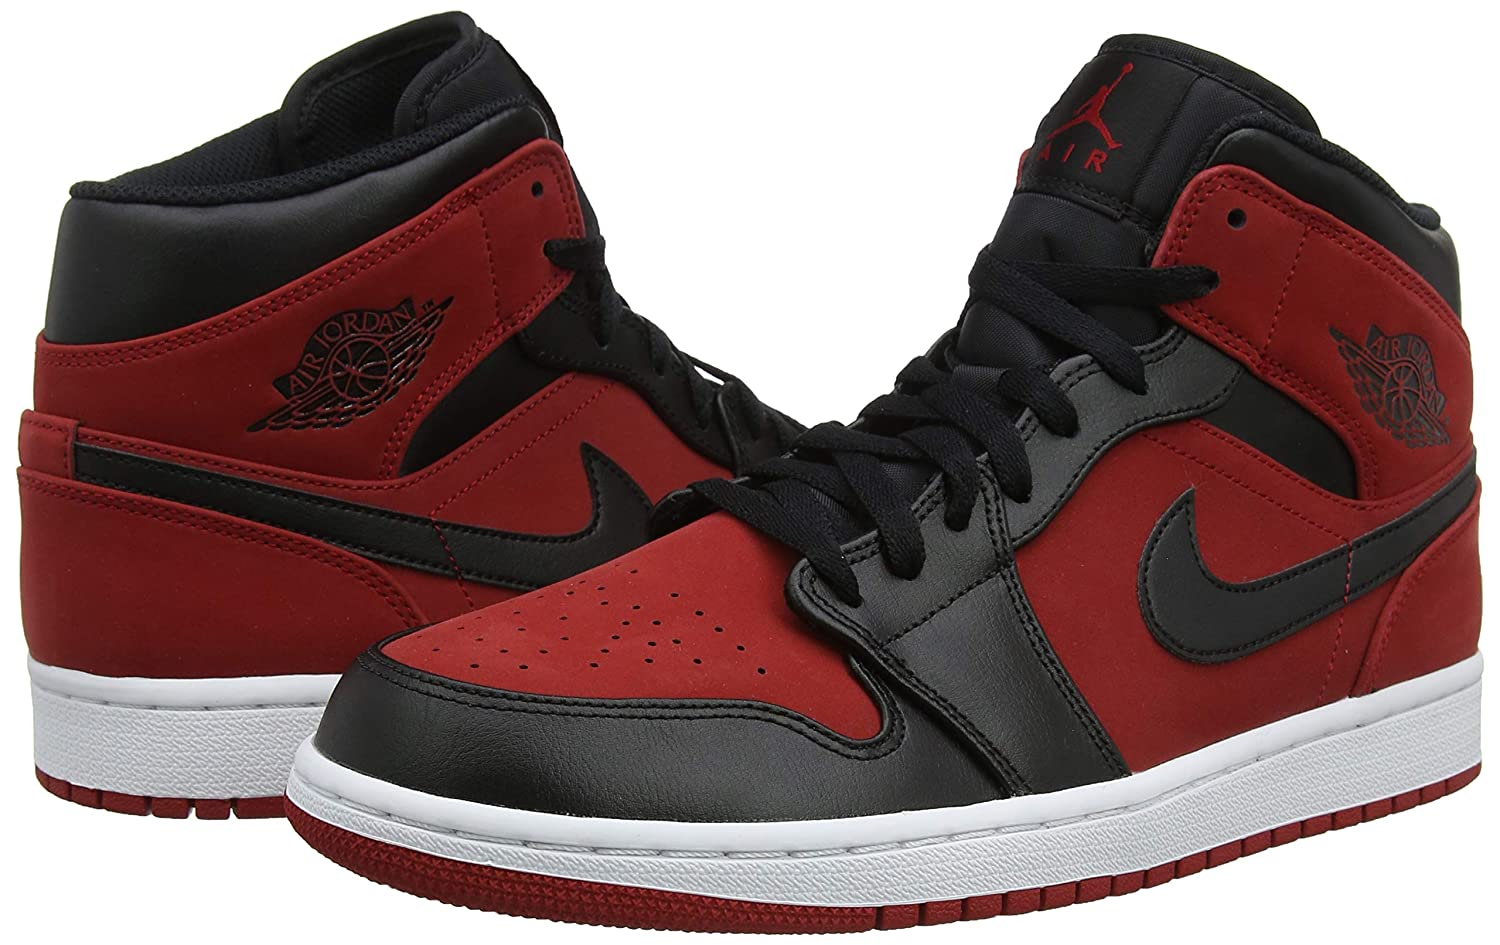 NIKE Jordan Men's Air Retro 1 Basketball Shoe, Gym RedBlack White (610), 8.5